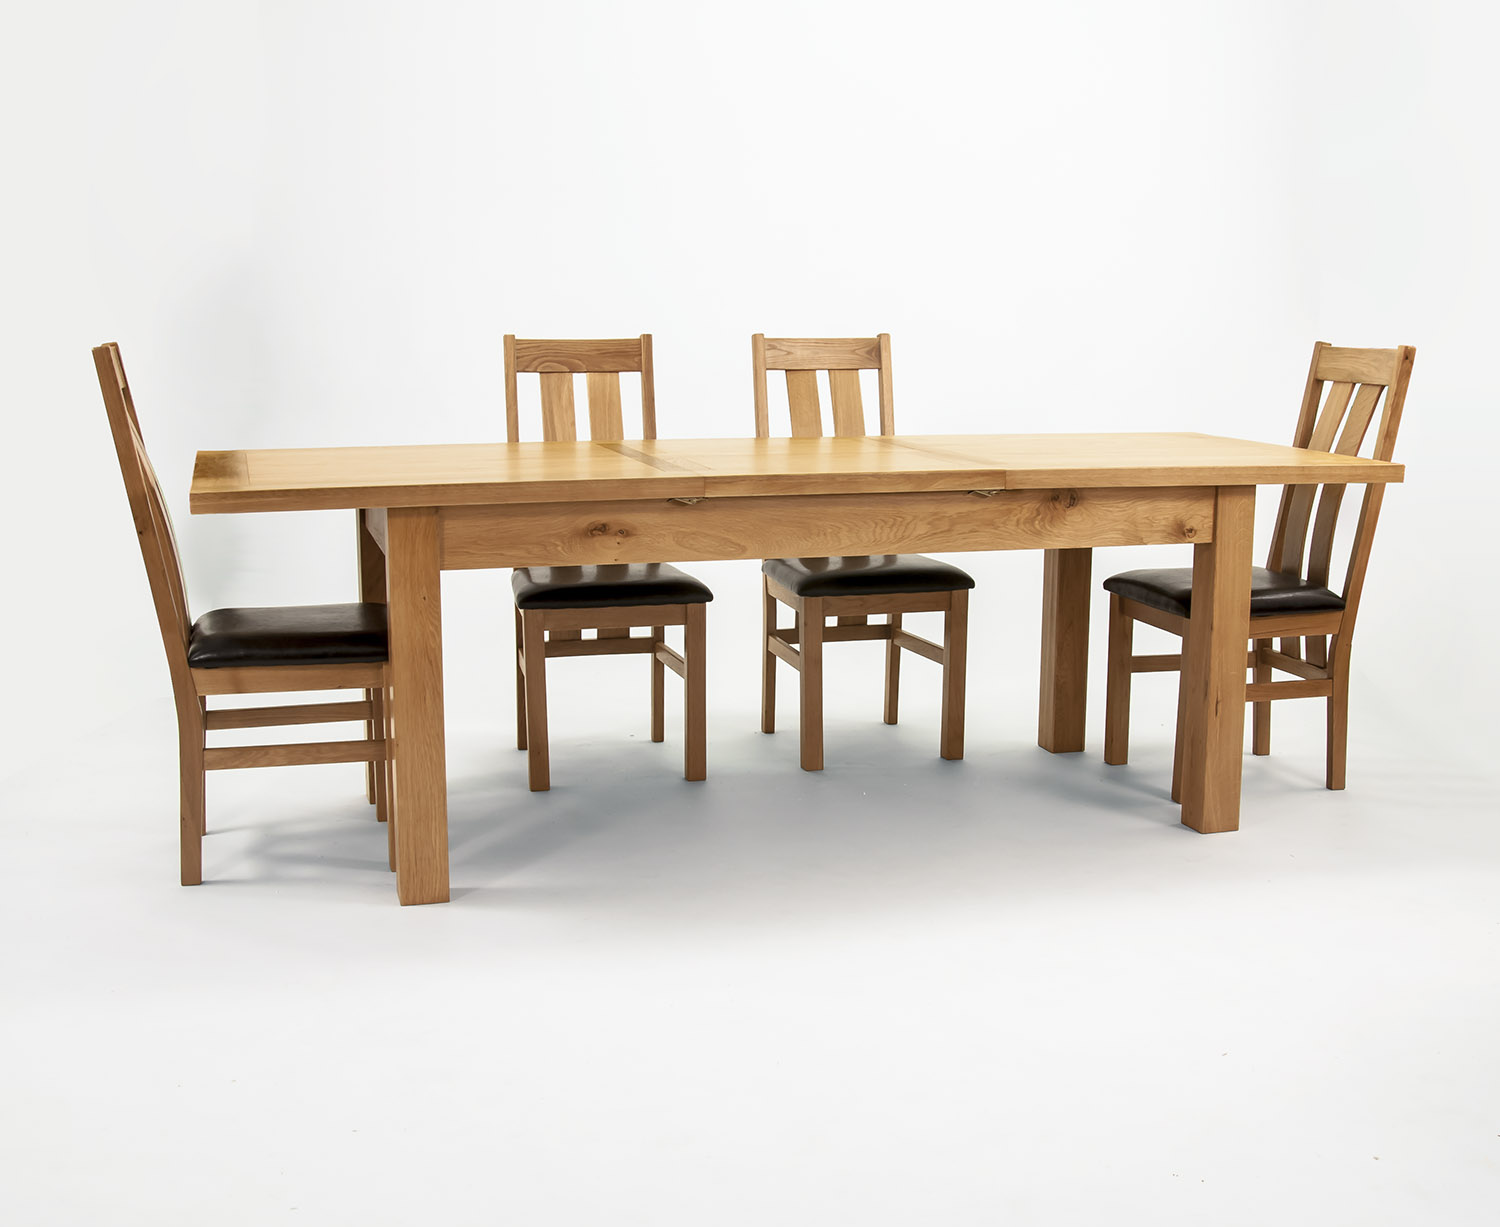 Solid Oak Extend Table 78x180 6 Chairs Furniture Jungle